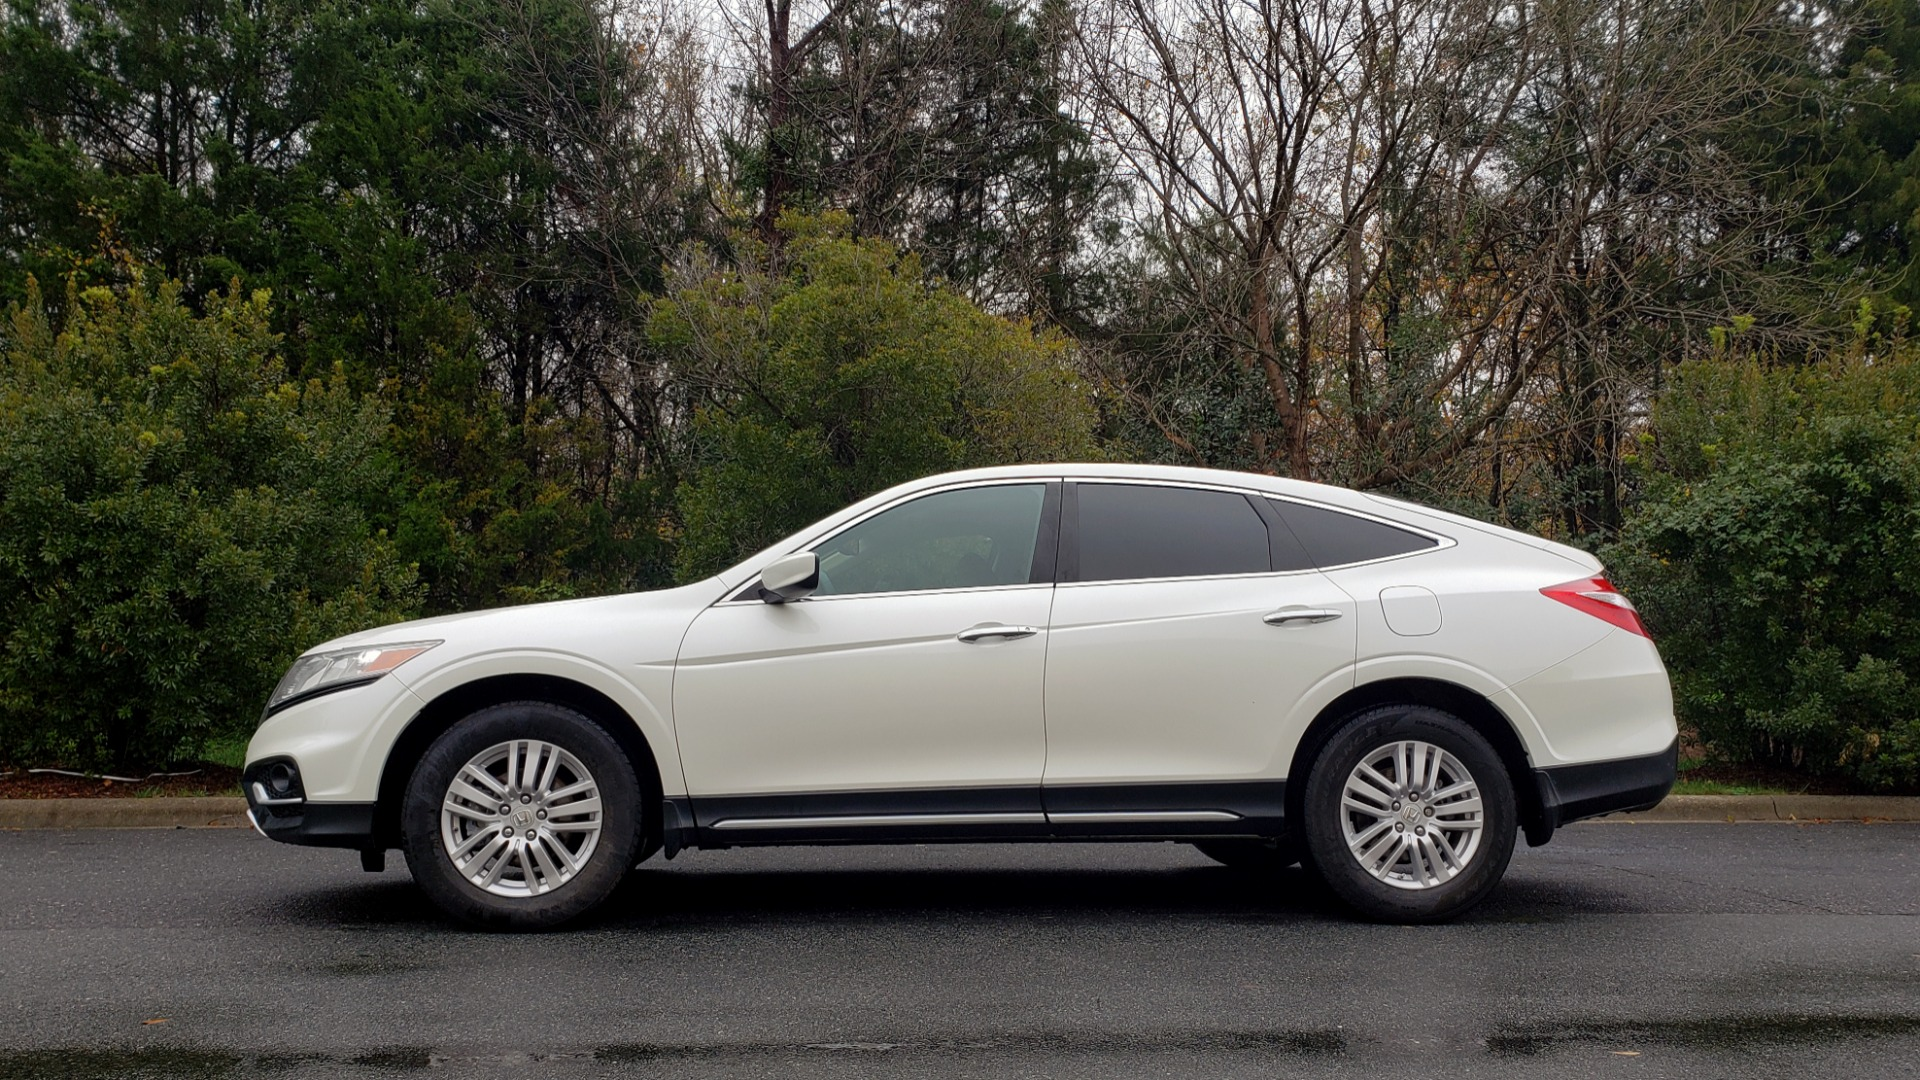 Used 2015 Honda CROSSTOUR EX-L 2WD / SUNROOF / REARVIEW / 17-IN ALLOY WHEELS for sale $11,595 at Formula Imports in Charlotte NC 28227 2